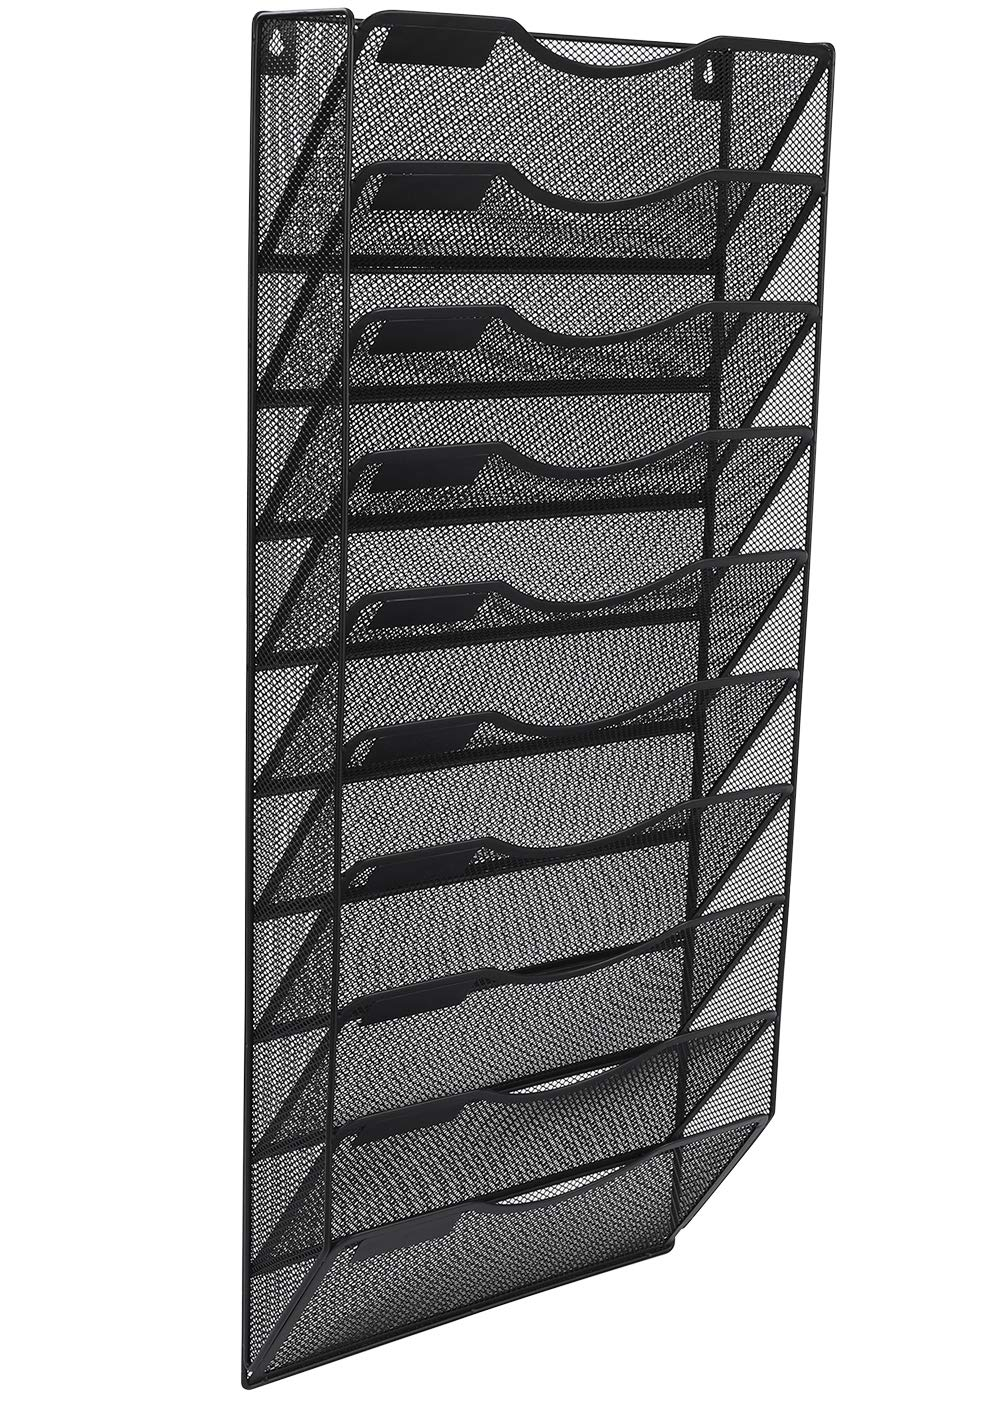 EasyPAG Office Wall File Holder Organizer Hanging Metal Magazine Rack 10 Tier, Black by EasyPAG